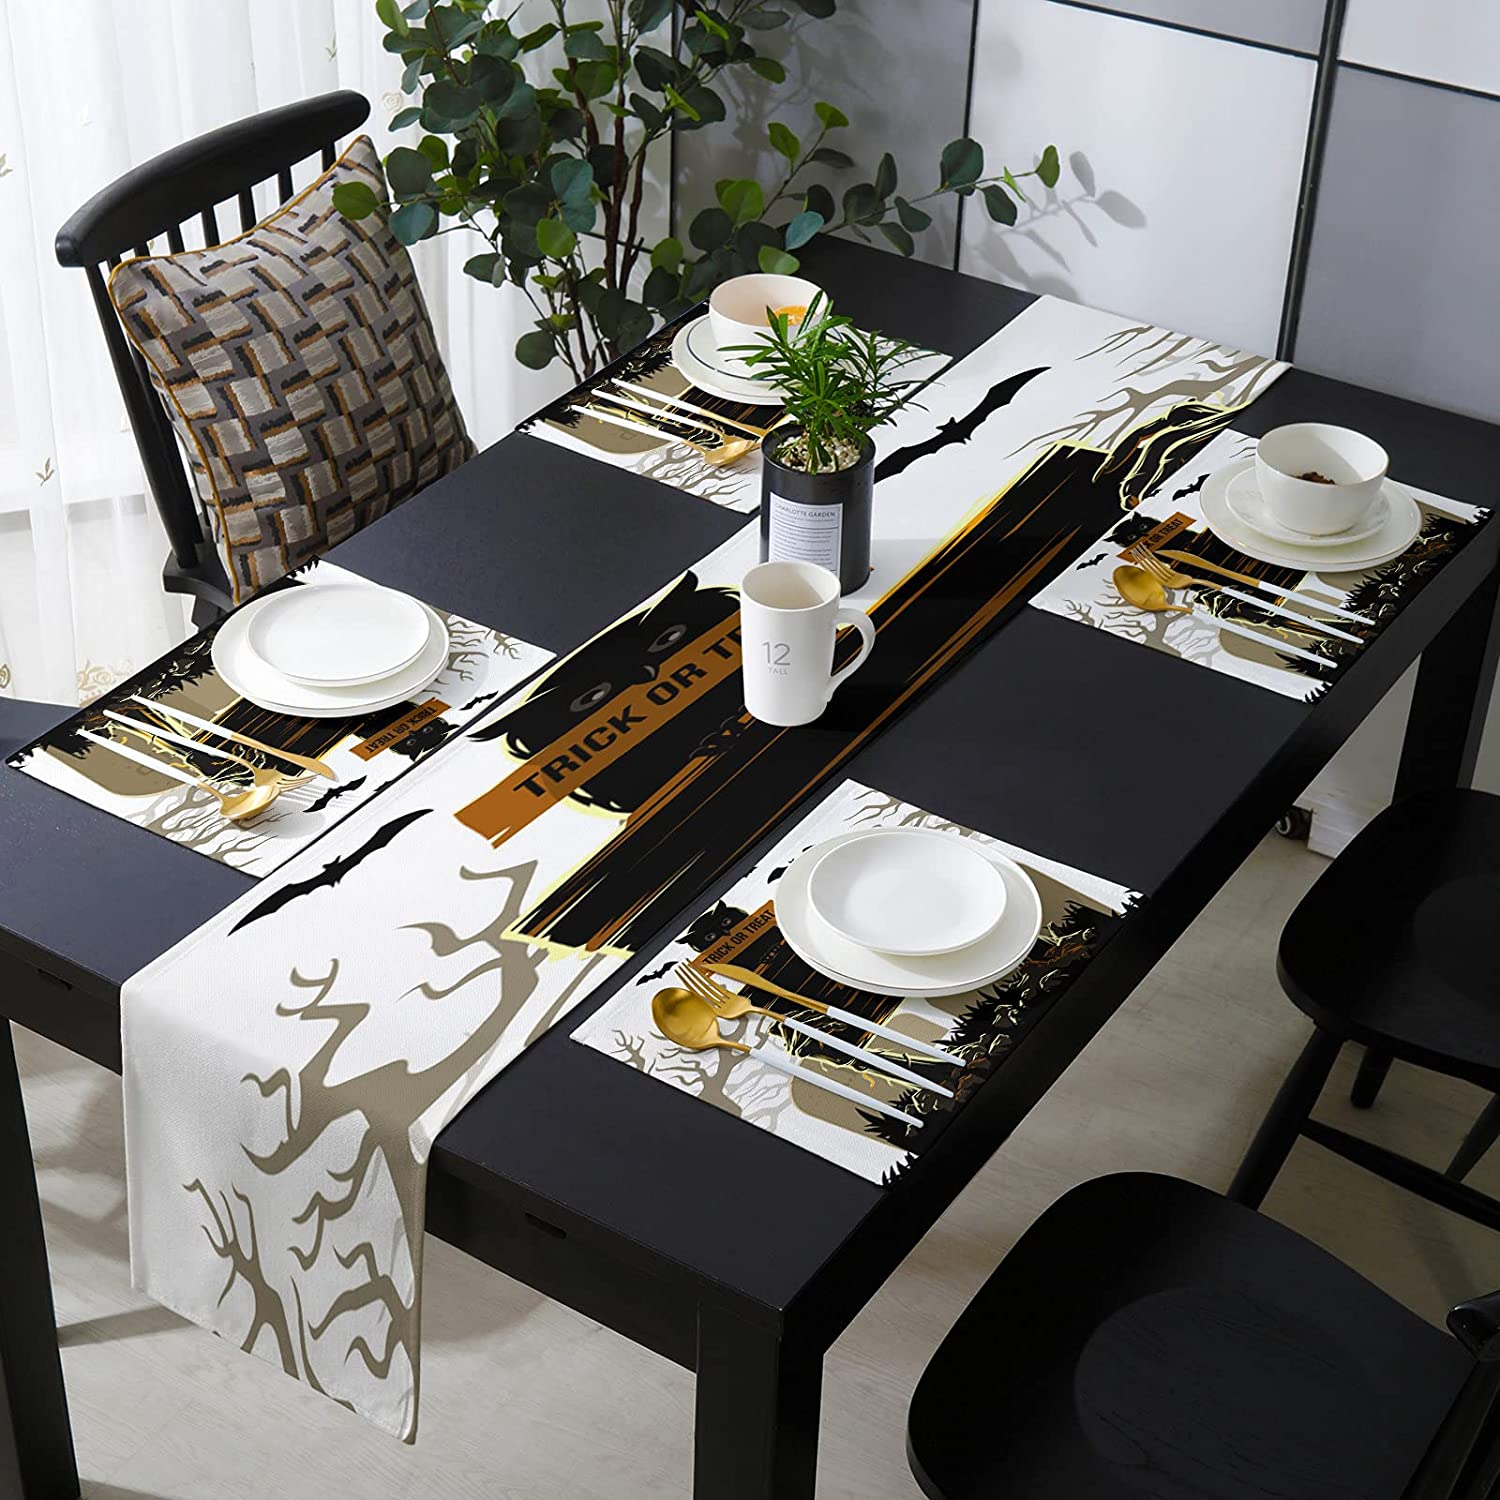 Fantasy Staring Some reservation 13 x 90 Max 67% OFF Inch of Placemats with Set Runner Table